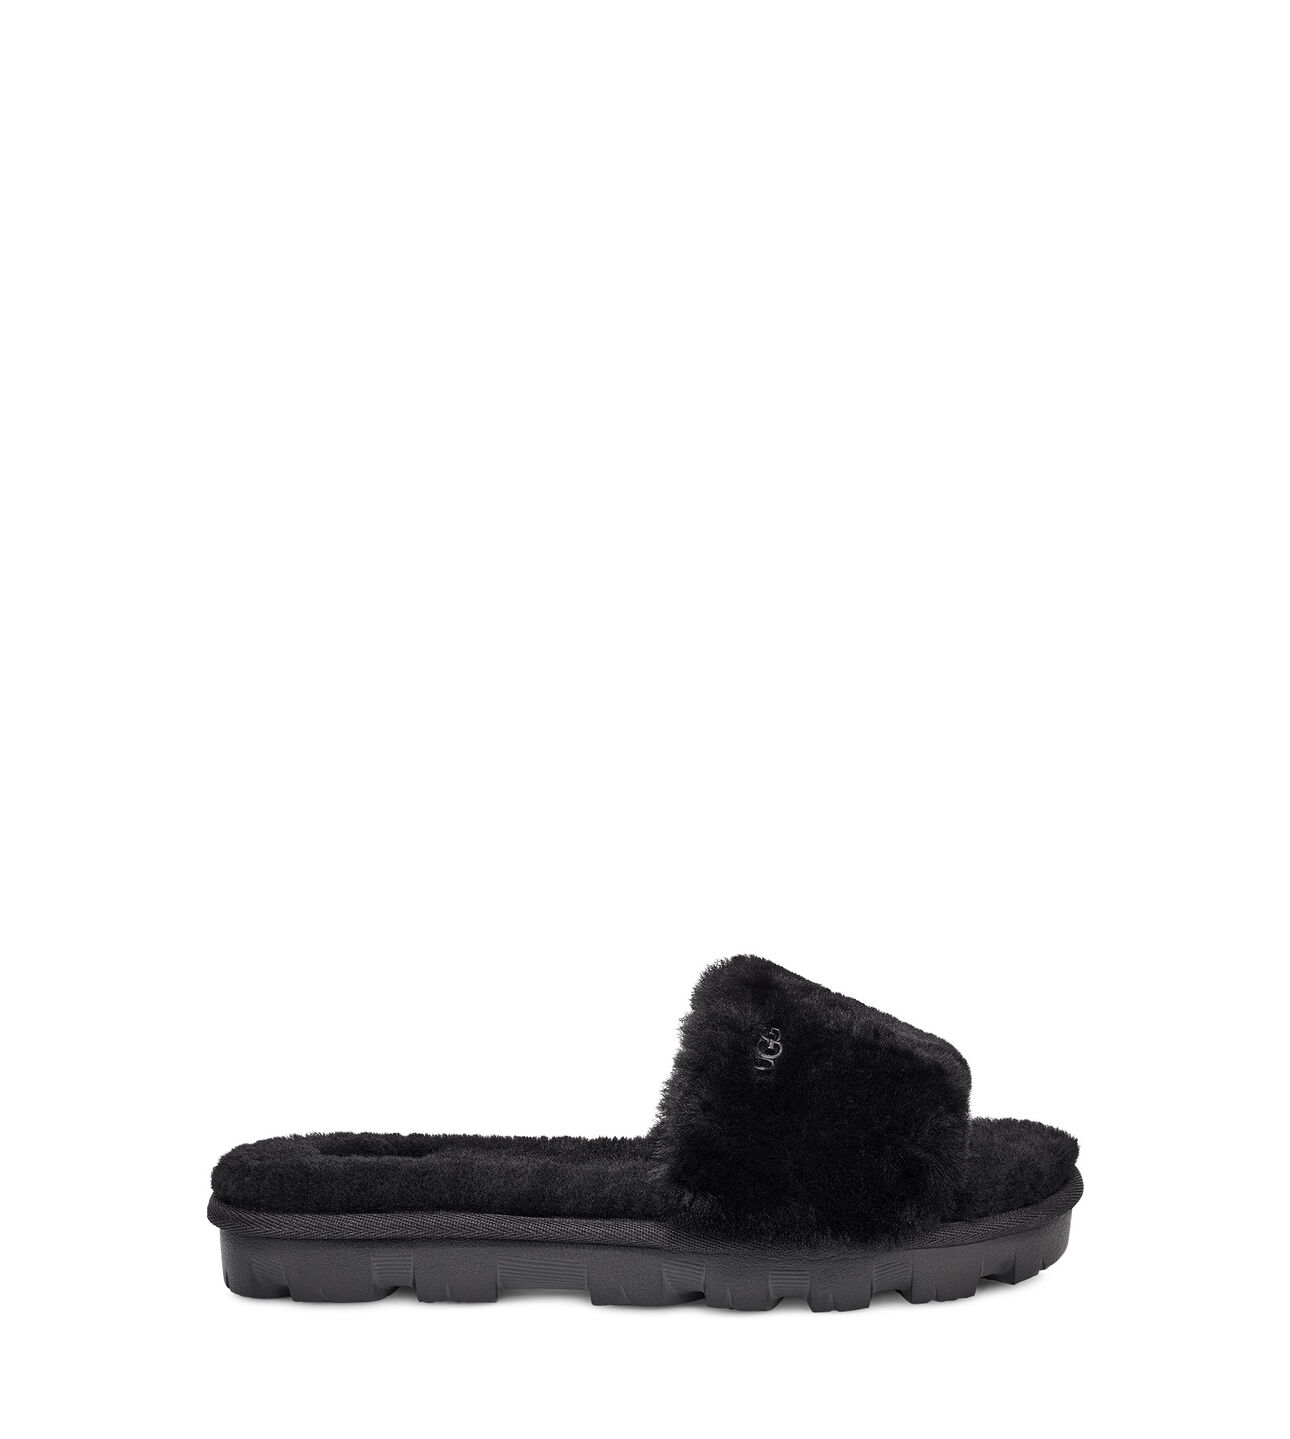 baf121888fa0 Women s. Share this product. Cozette Slide. UGG